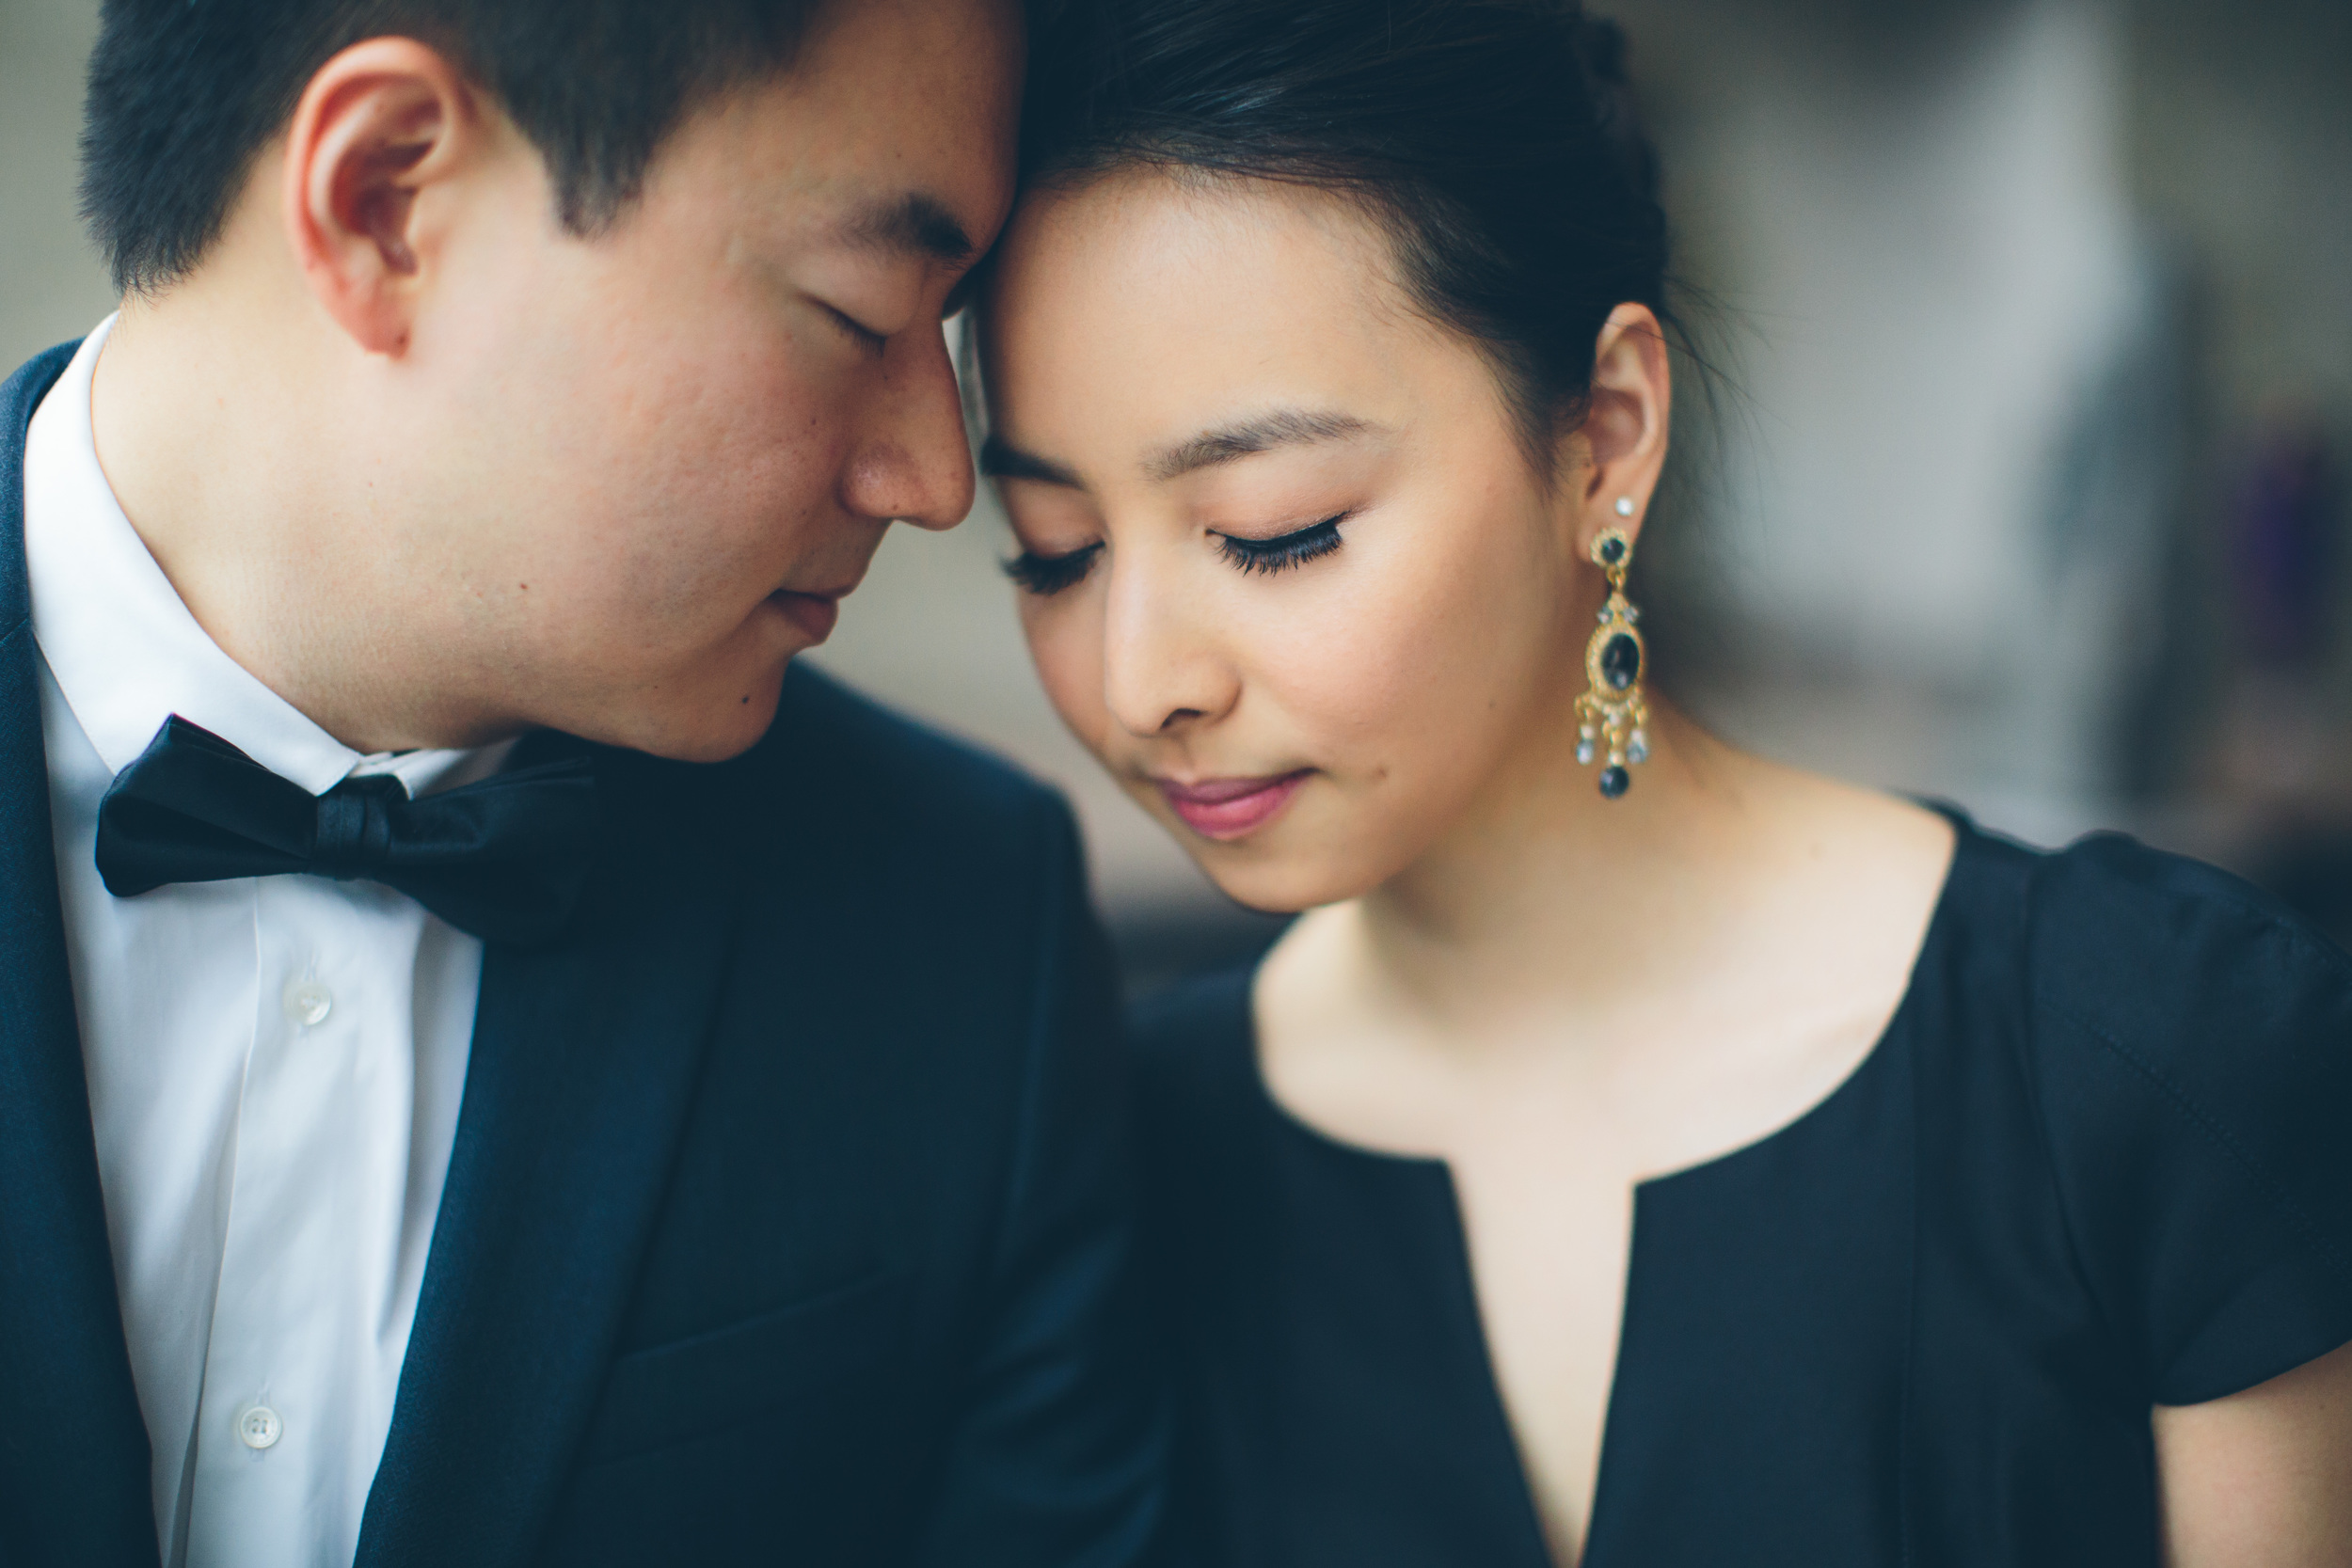 FABIANA-MICHELE-NYC-ENGAGEMENT-SESSION-MET-CYNTHIACHUNG-0016.jpg